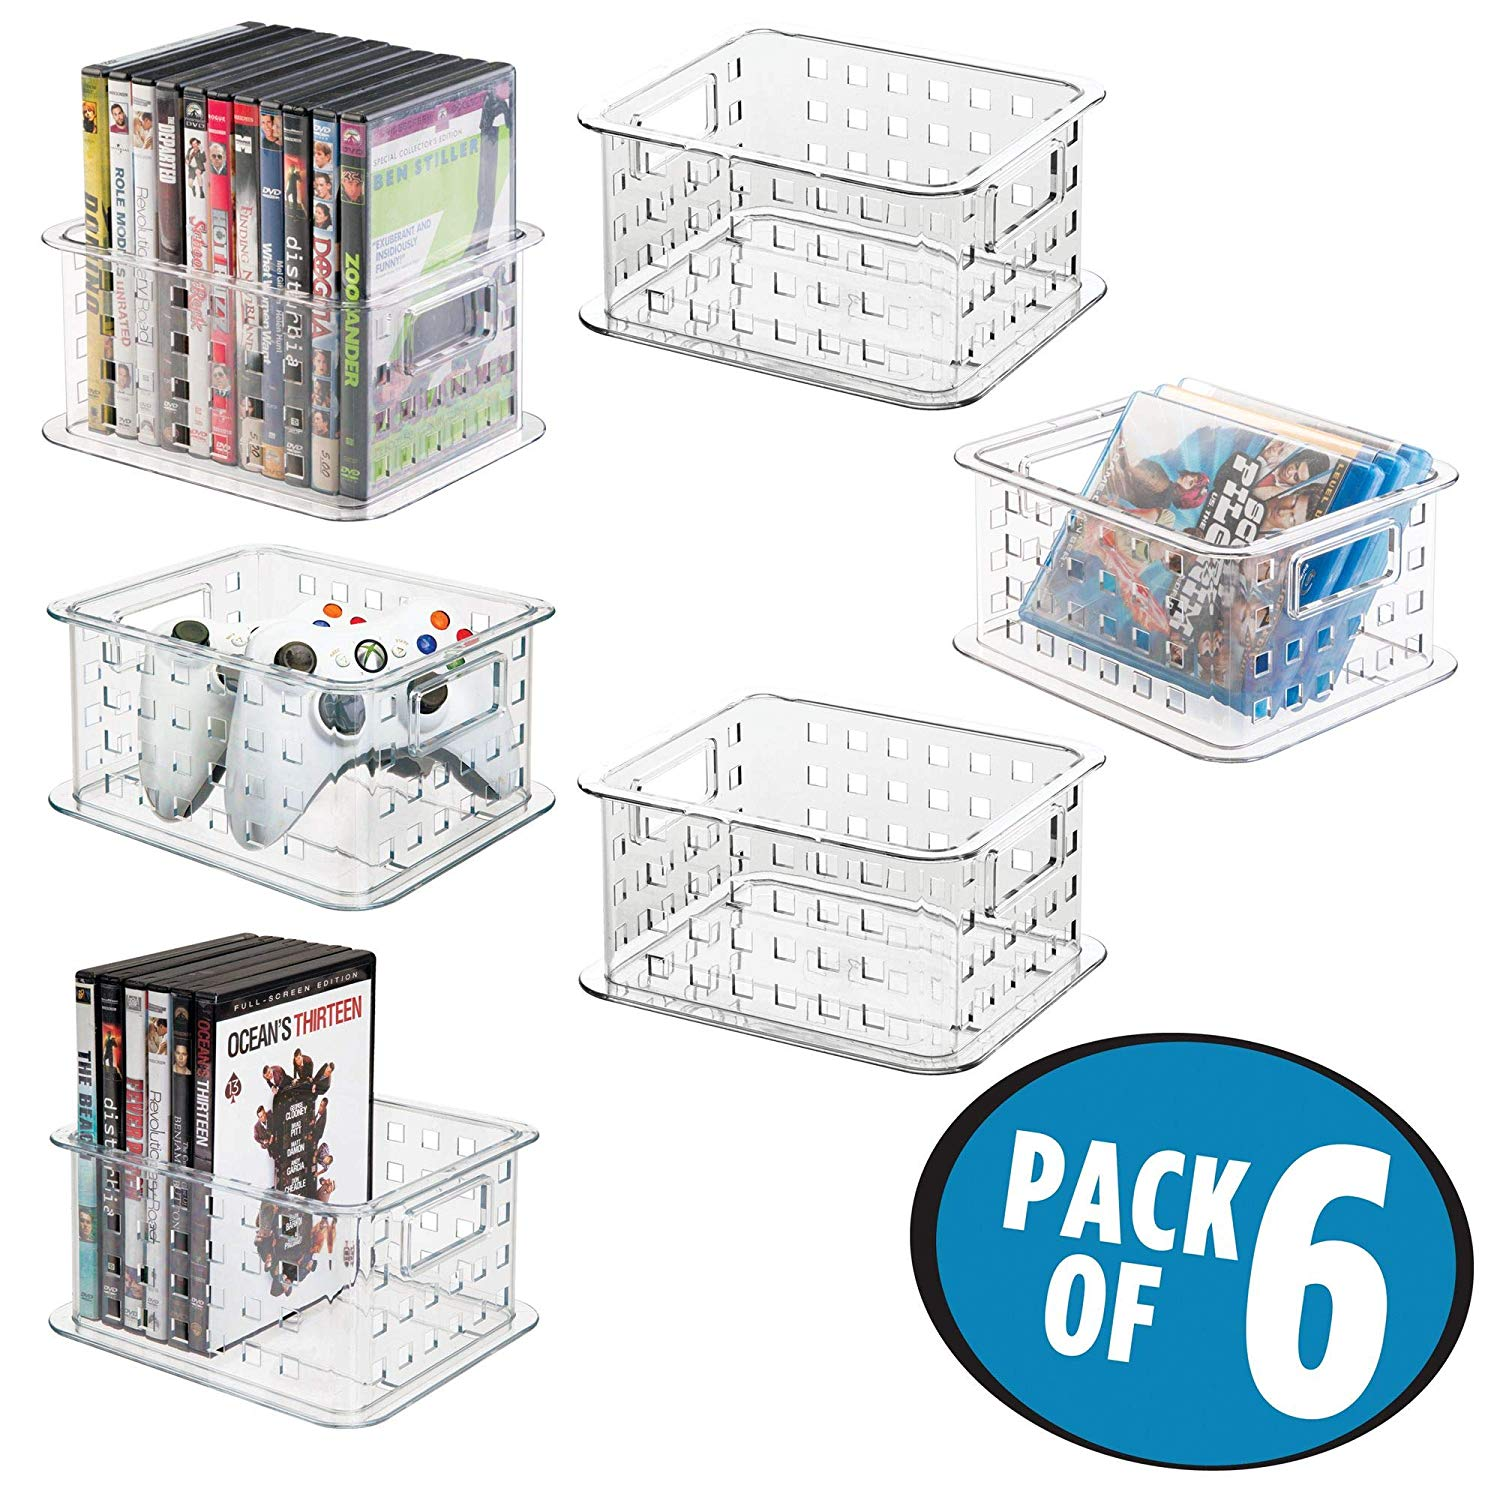 mDesign Plastic Stackable Household Storage Organizer Container Bin with Handles - for Media Consoles, Closets, Cabinets - Holds DVD's, Blu Ray, Video Games, Gaming Accessories - 6 Pack, Clear